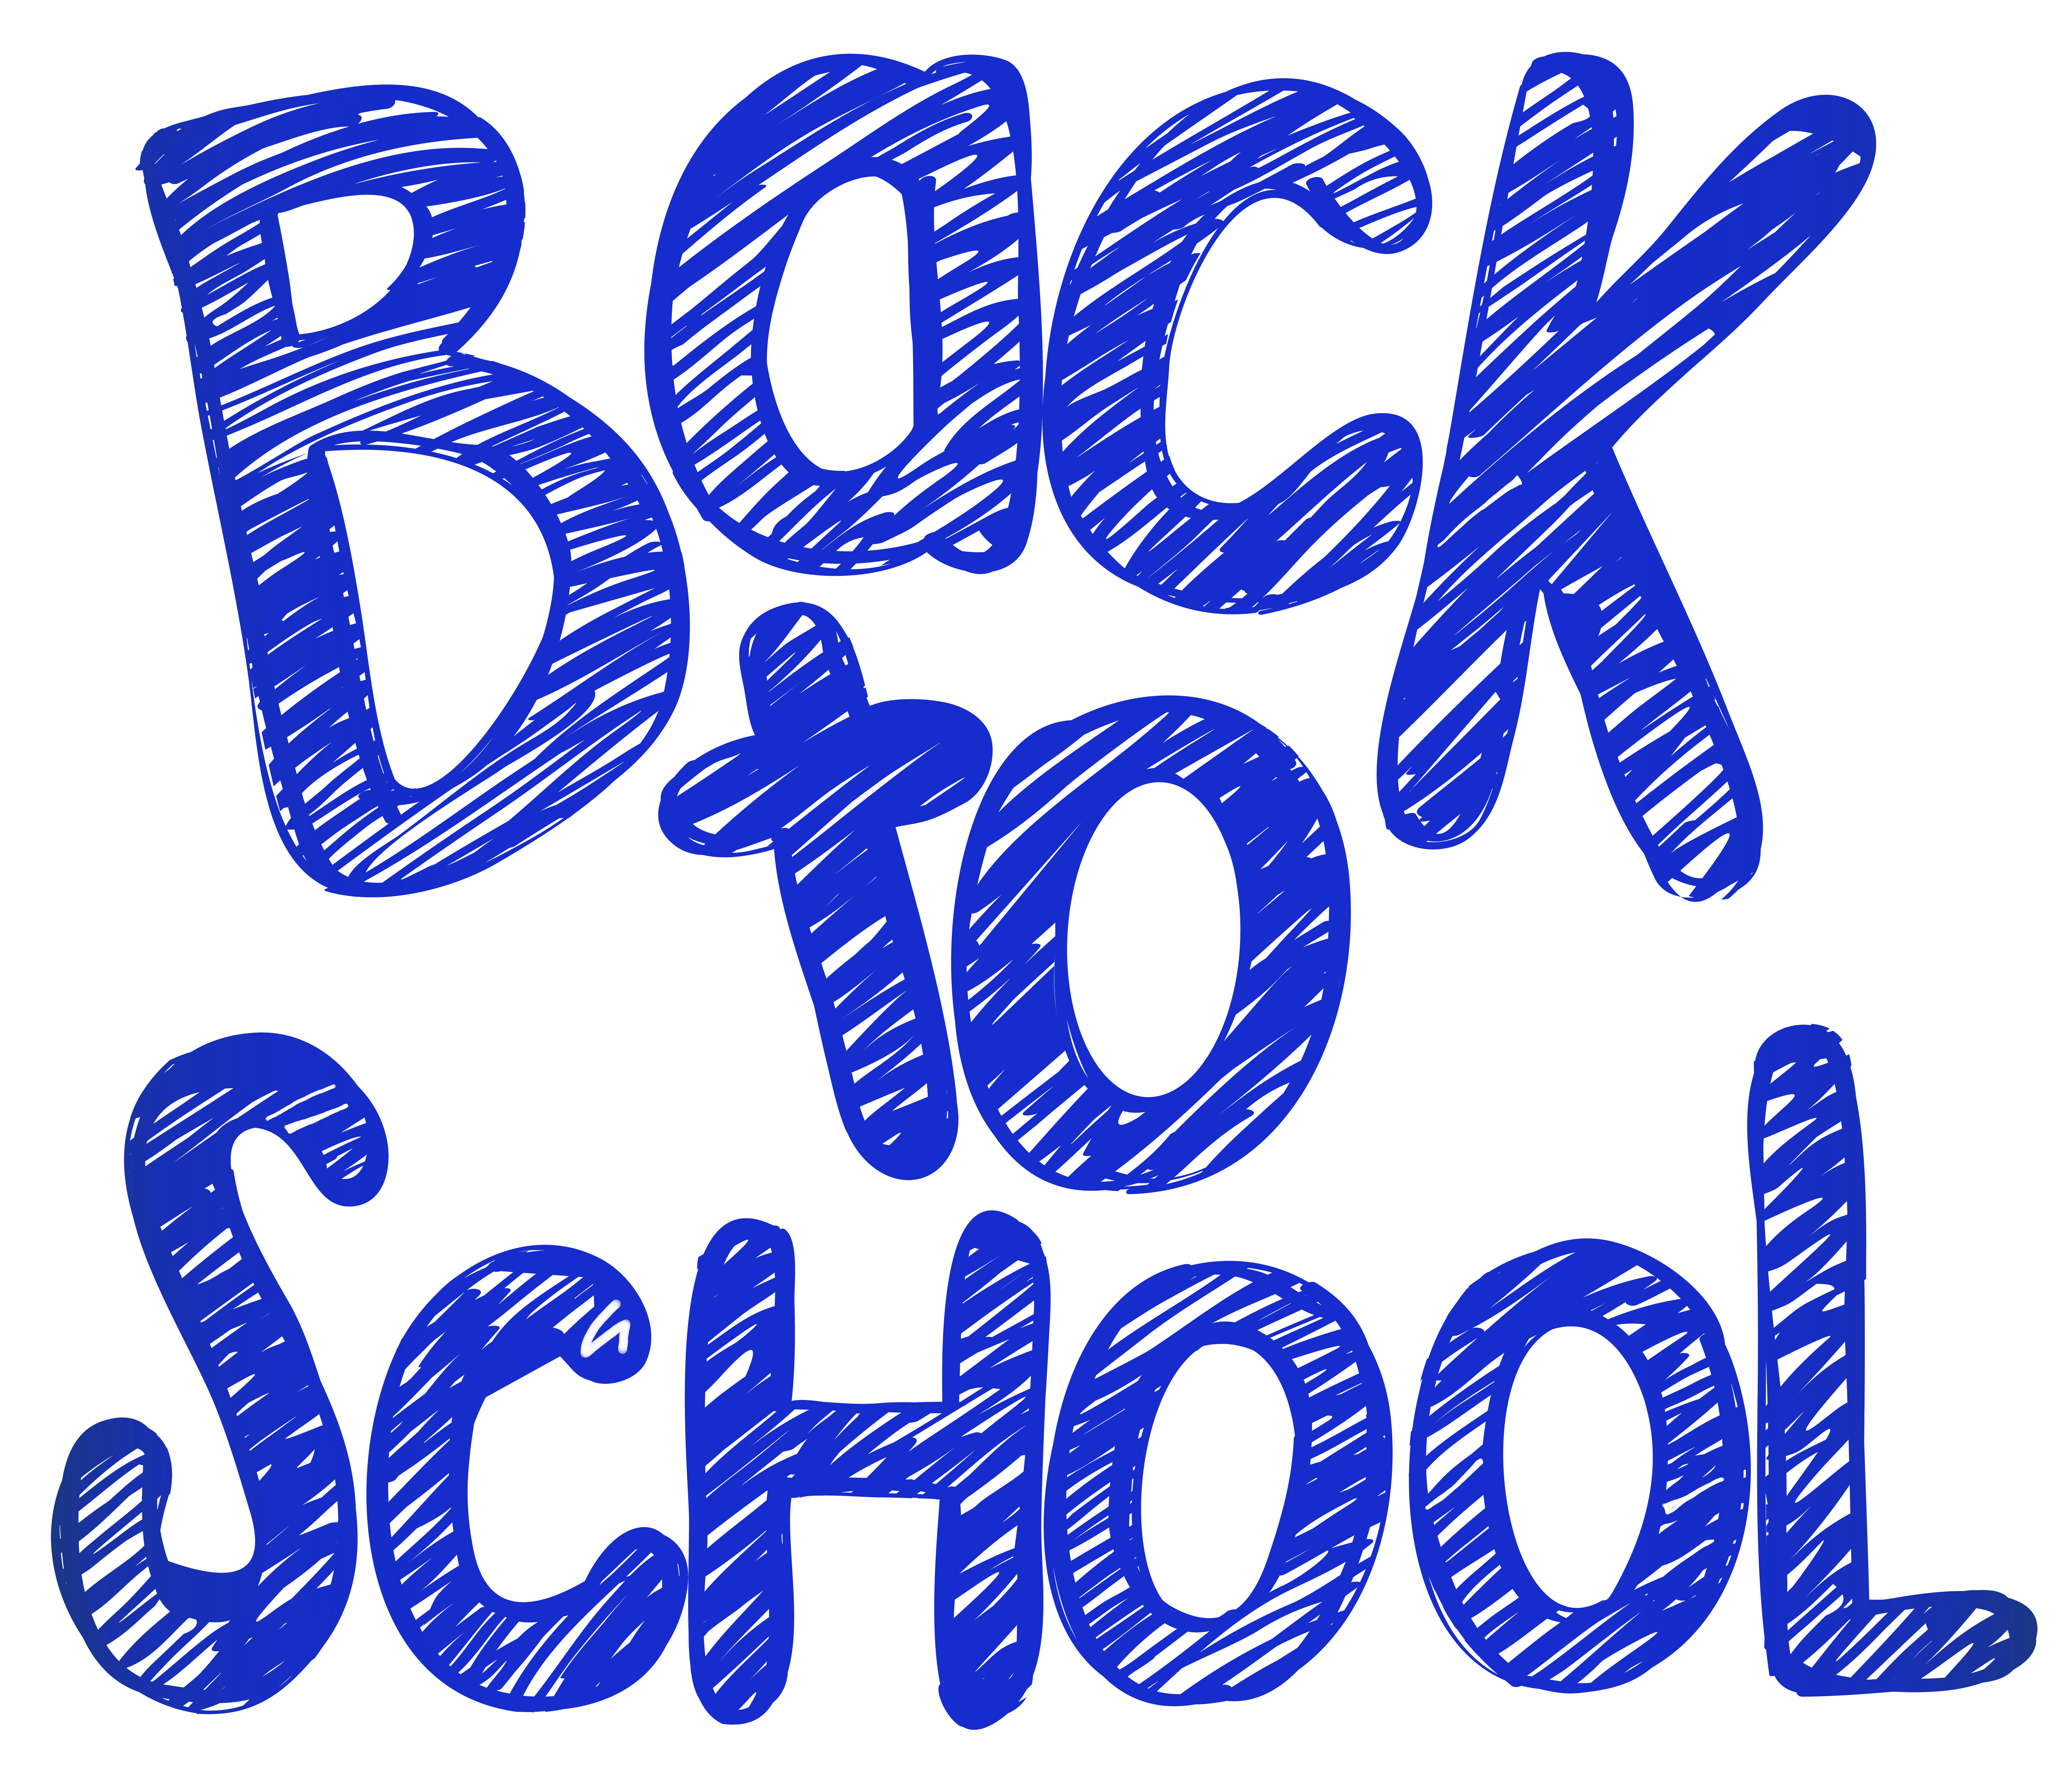 Galaxy clipart category. Back to school png